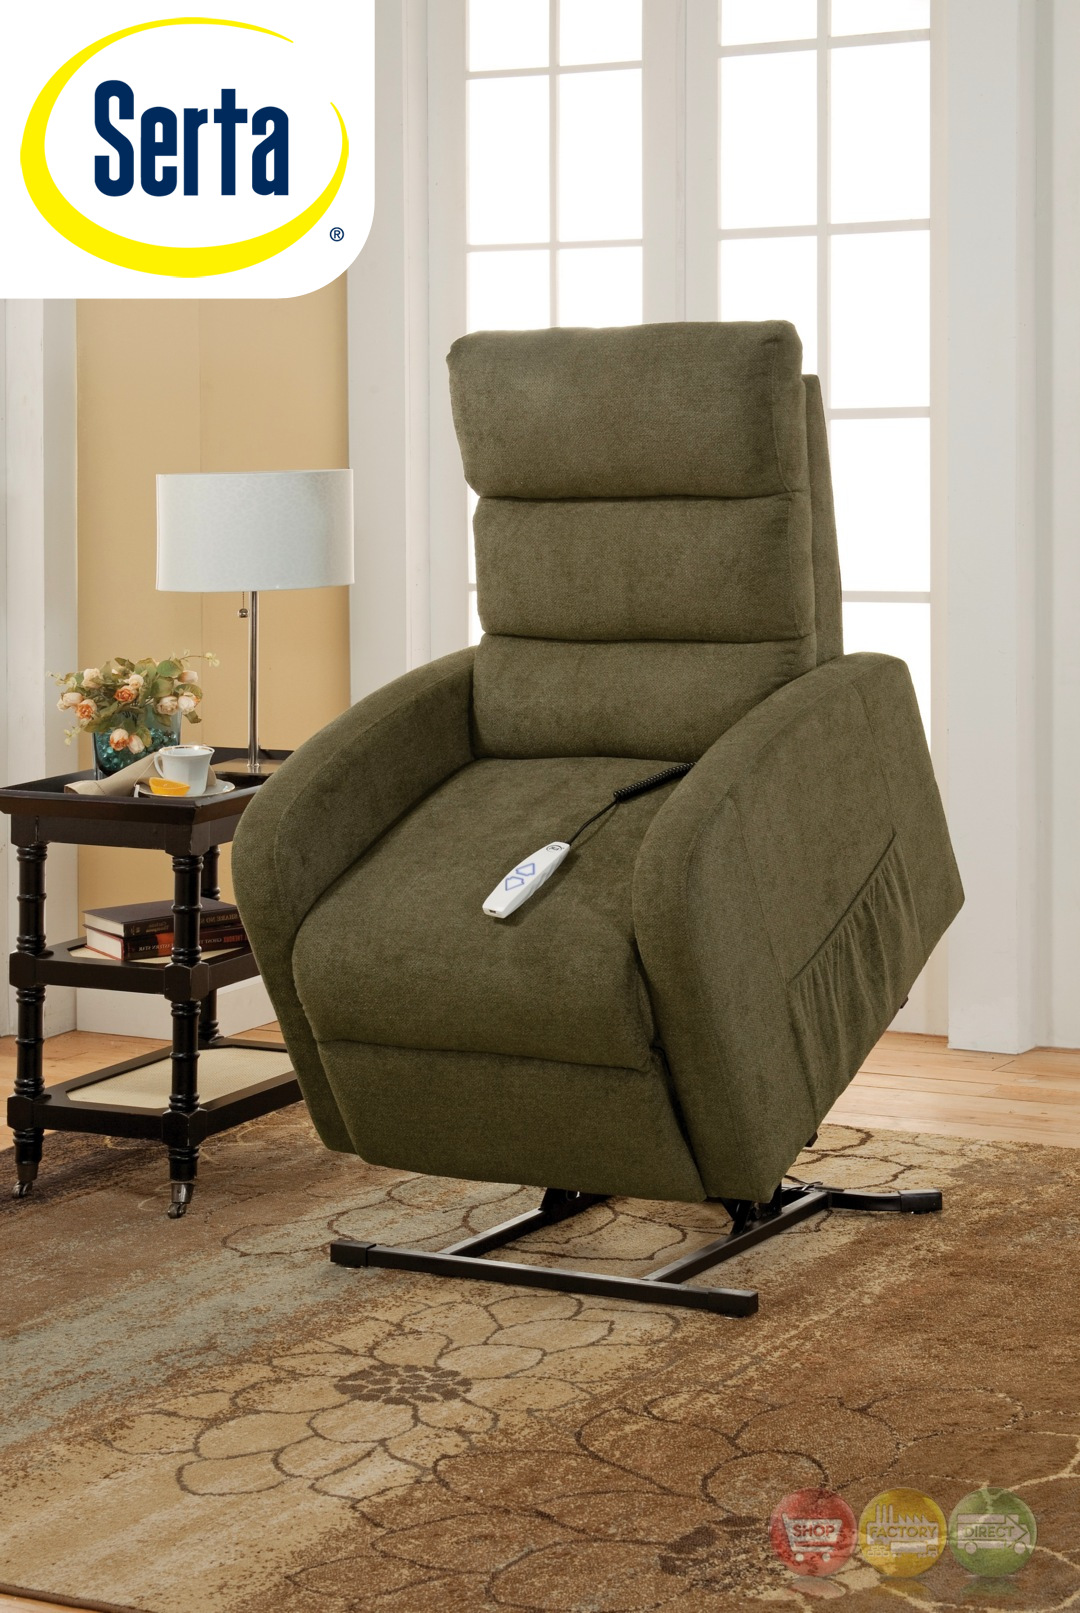 Serta Comfortlift Newton Green Reclining Lift Chair With